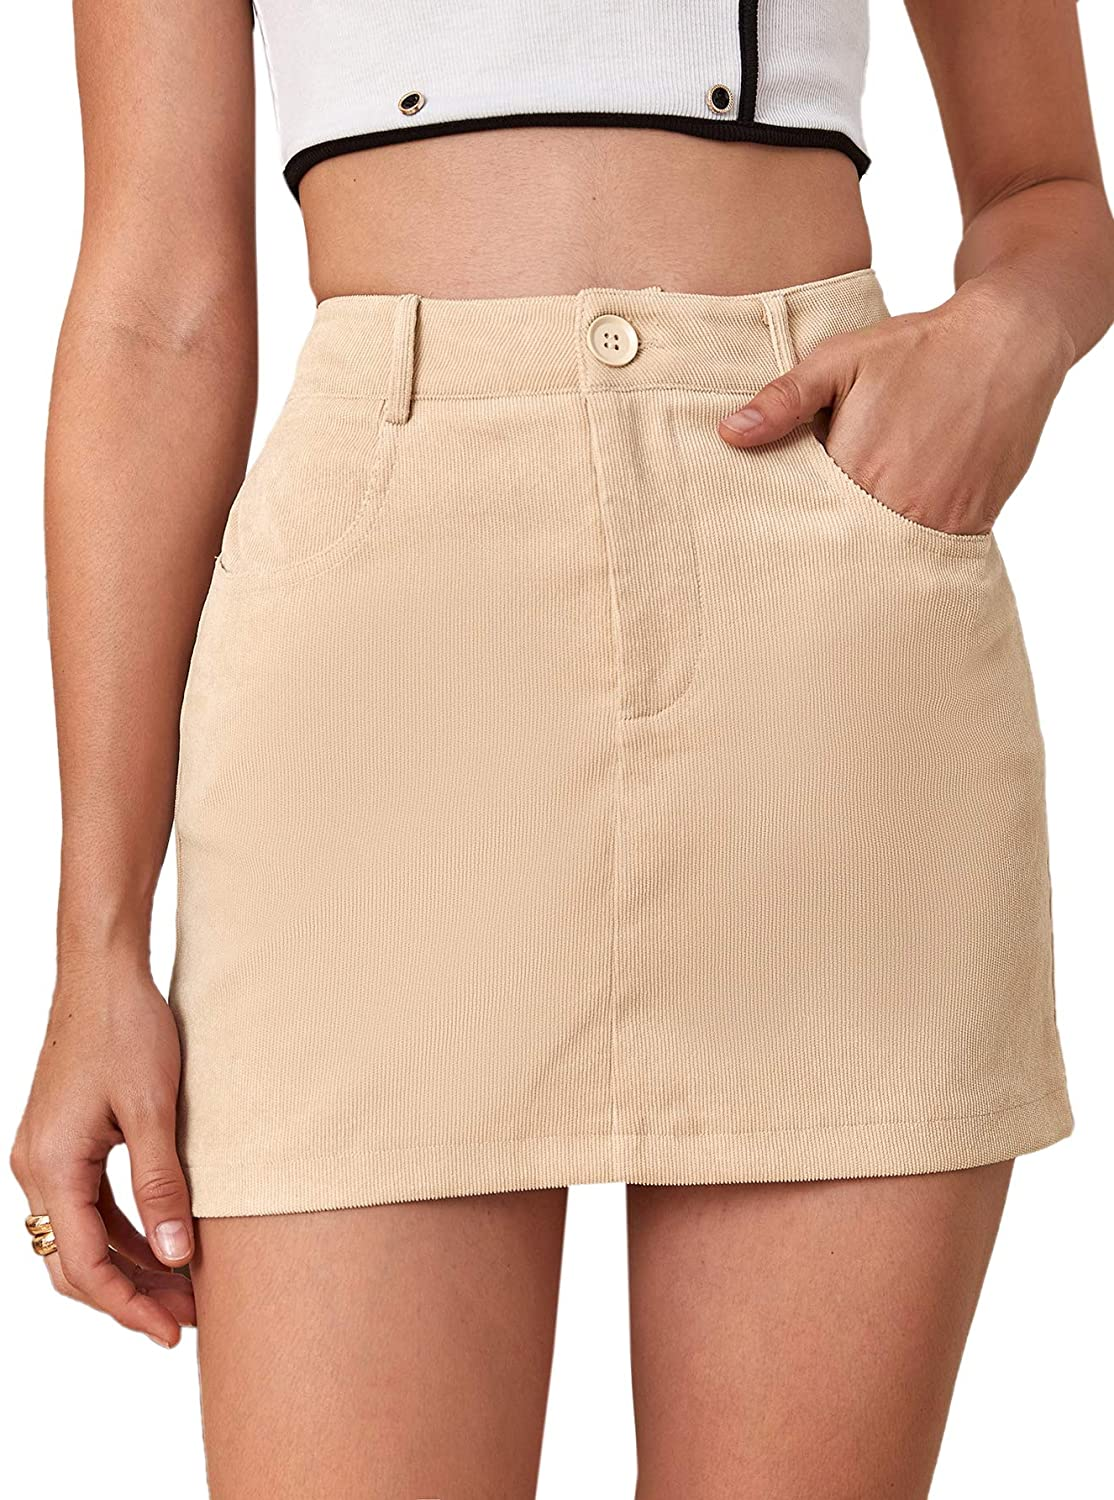 Milumia Women's Casual Button Front High Waist Corduroy Short Mini Skirt with Pockets